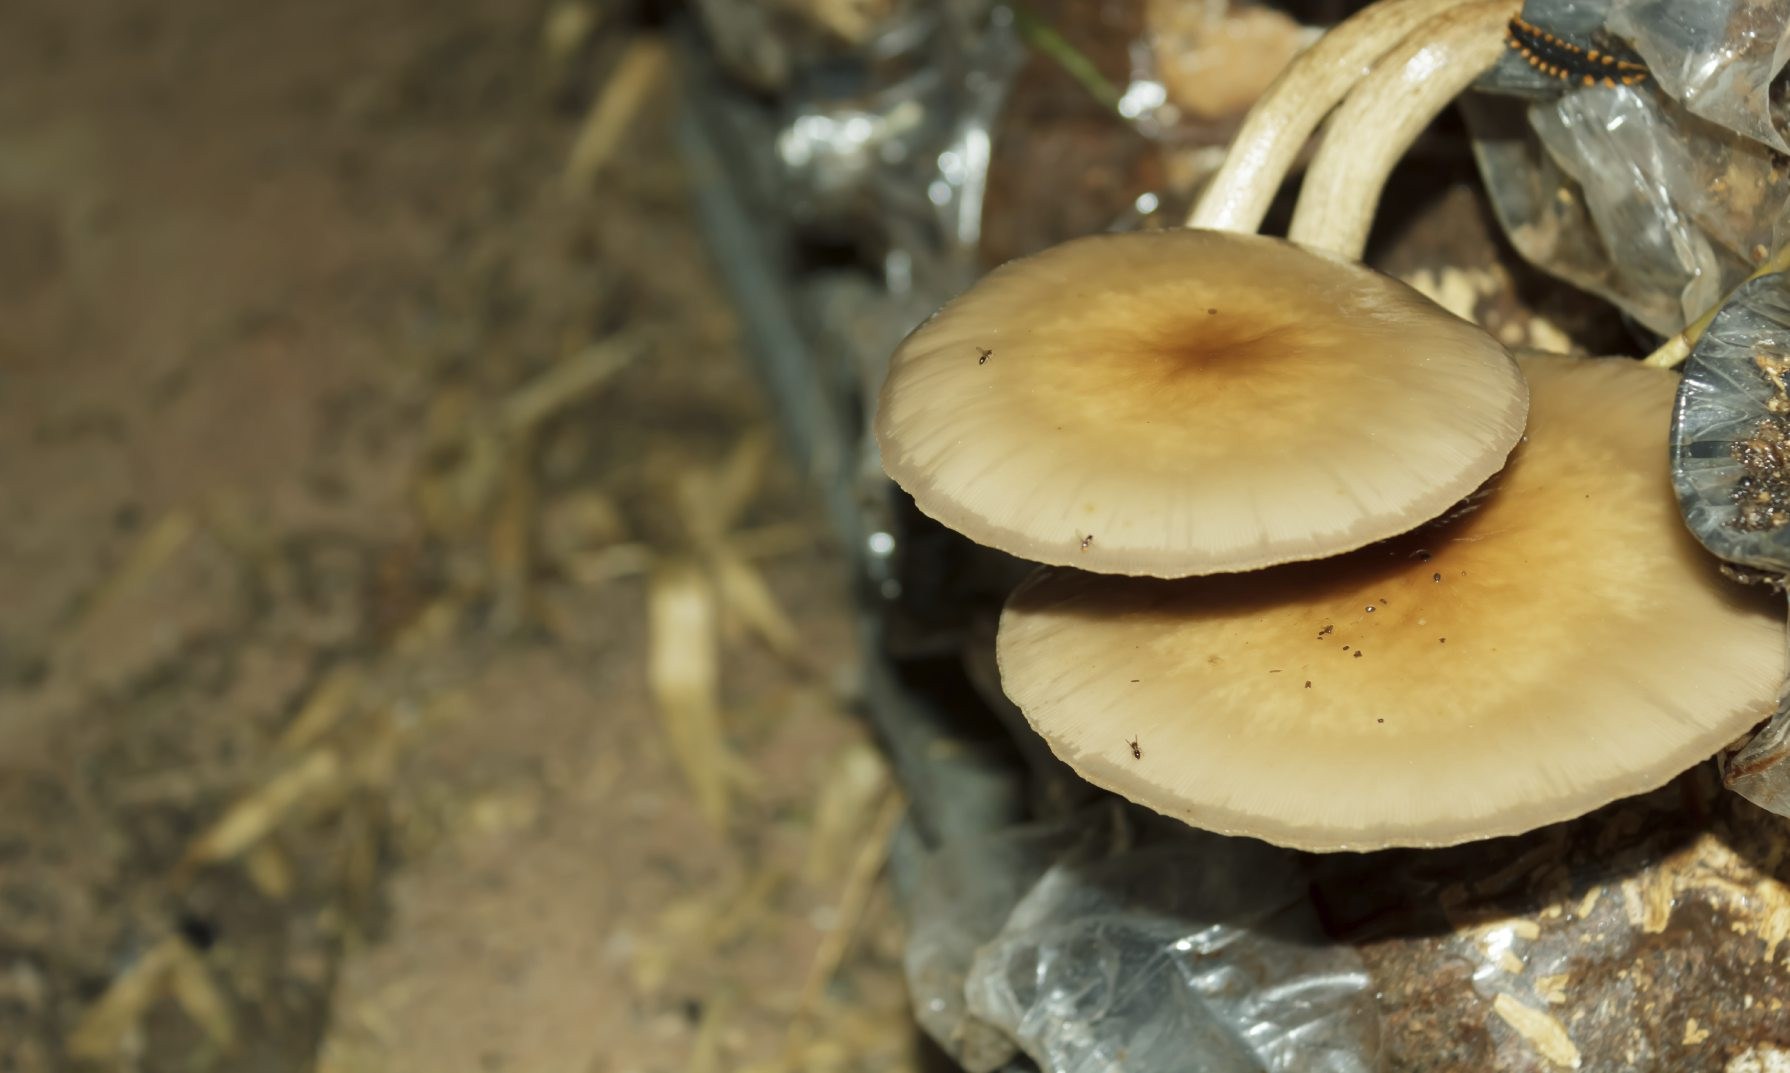 How To Grow Oyster Mushrooms  Growing Oyster Mushrooms Learn About The Cultivation